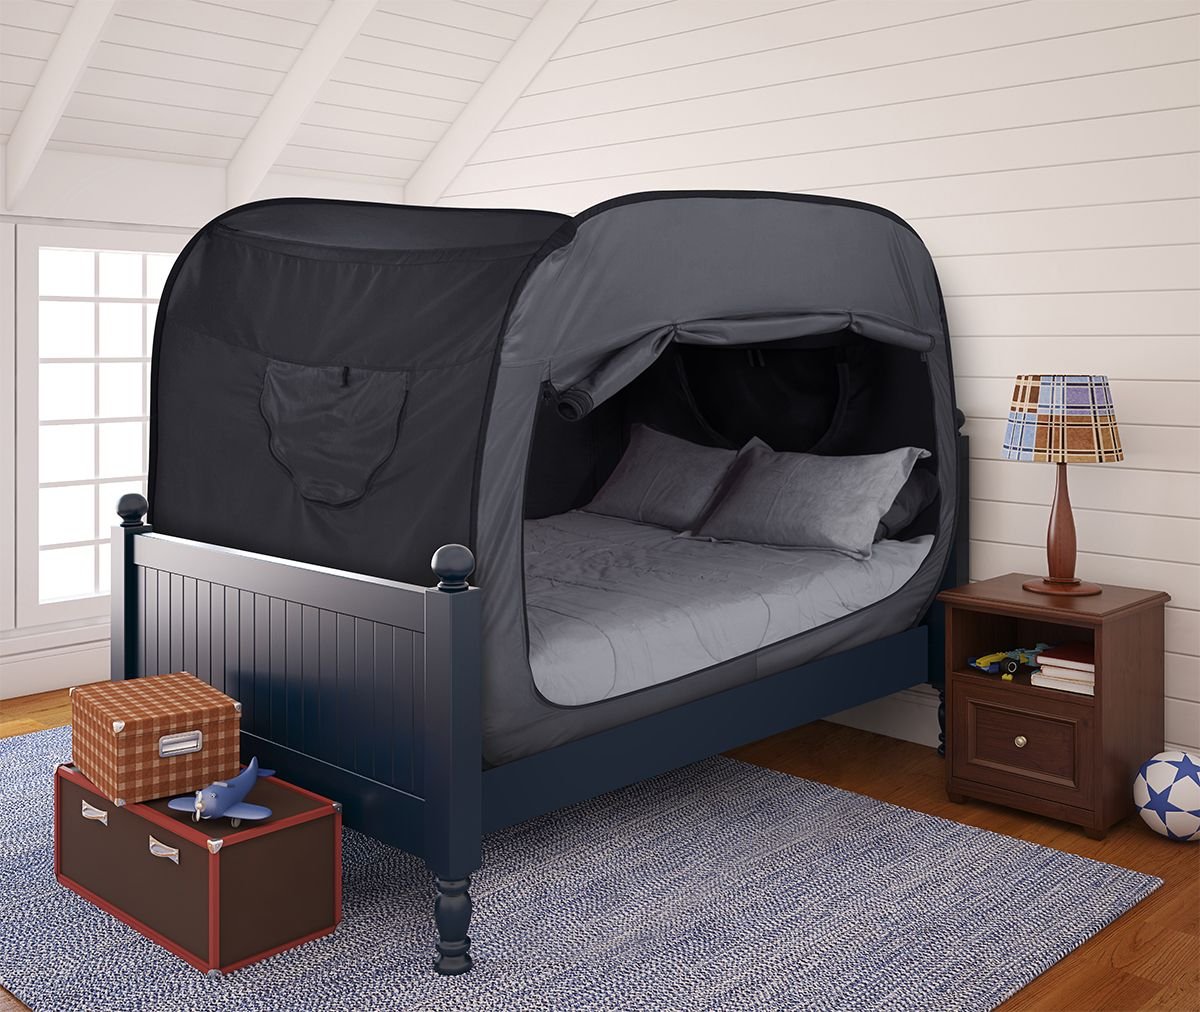 The Bed Tent For Better Sleep Bed Tent Bed Decor